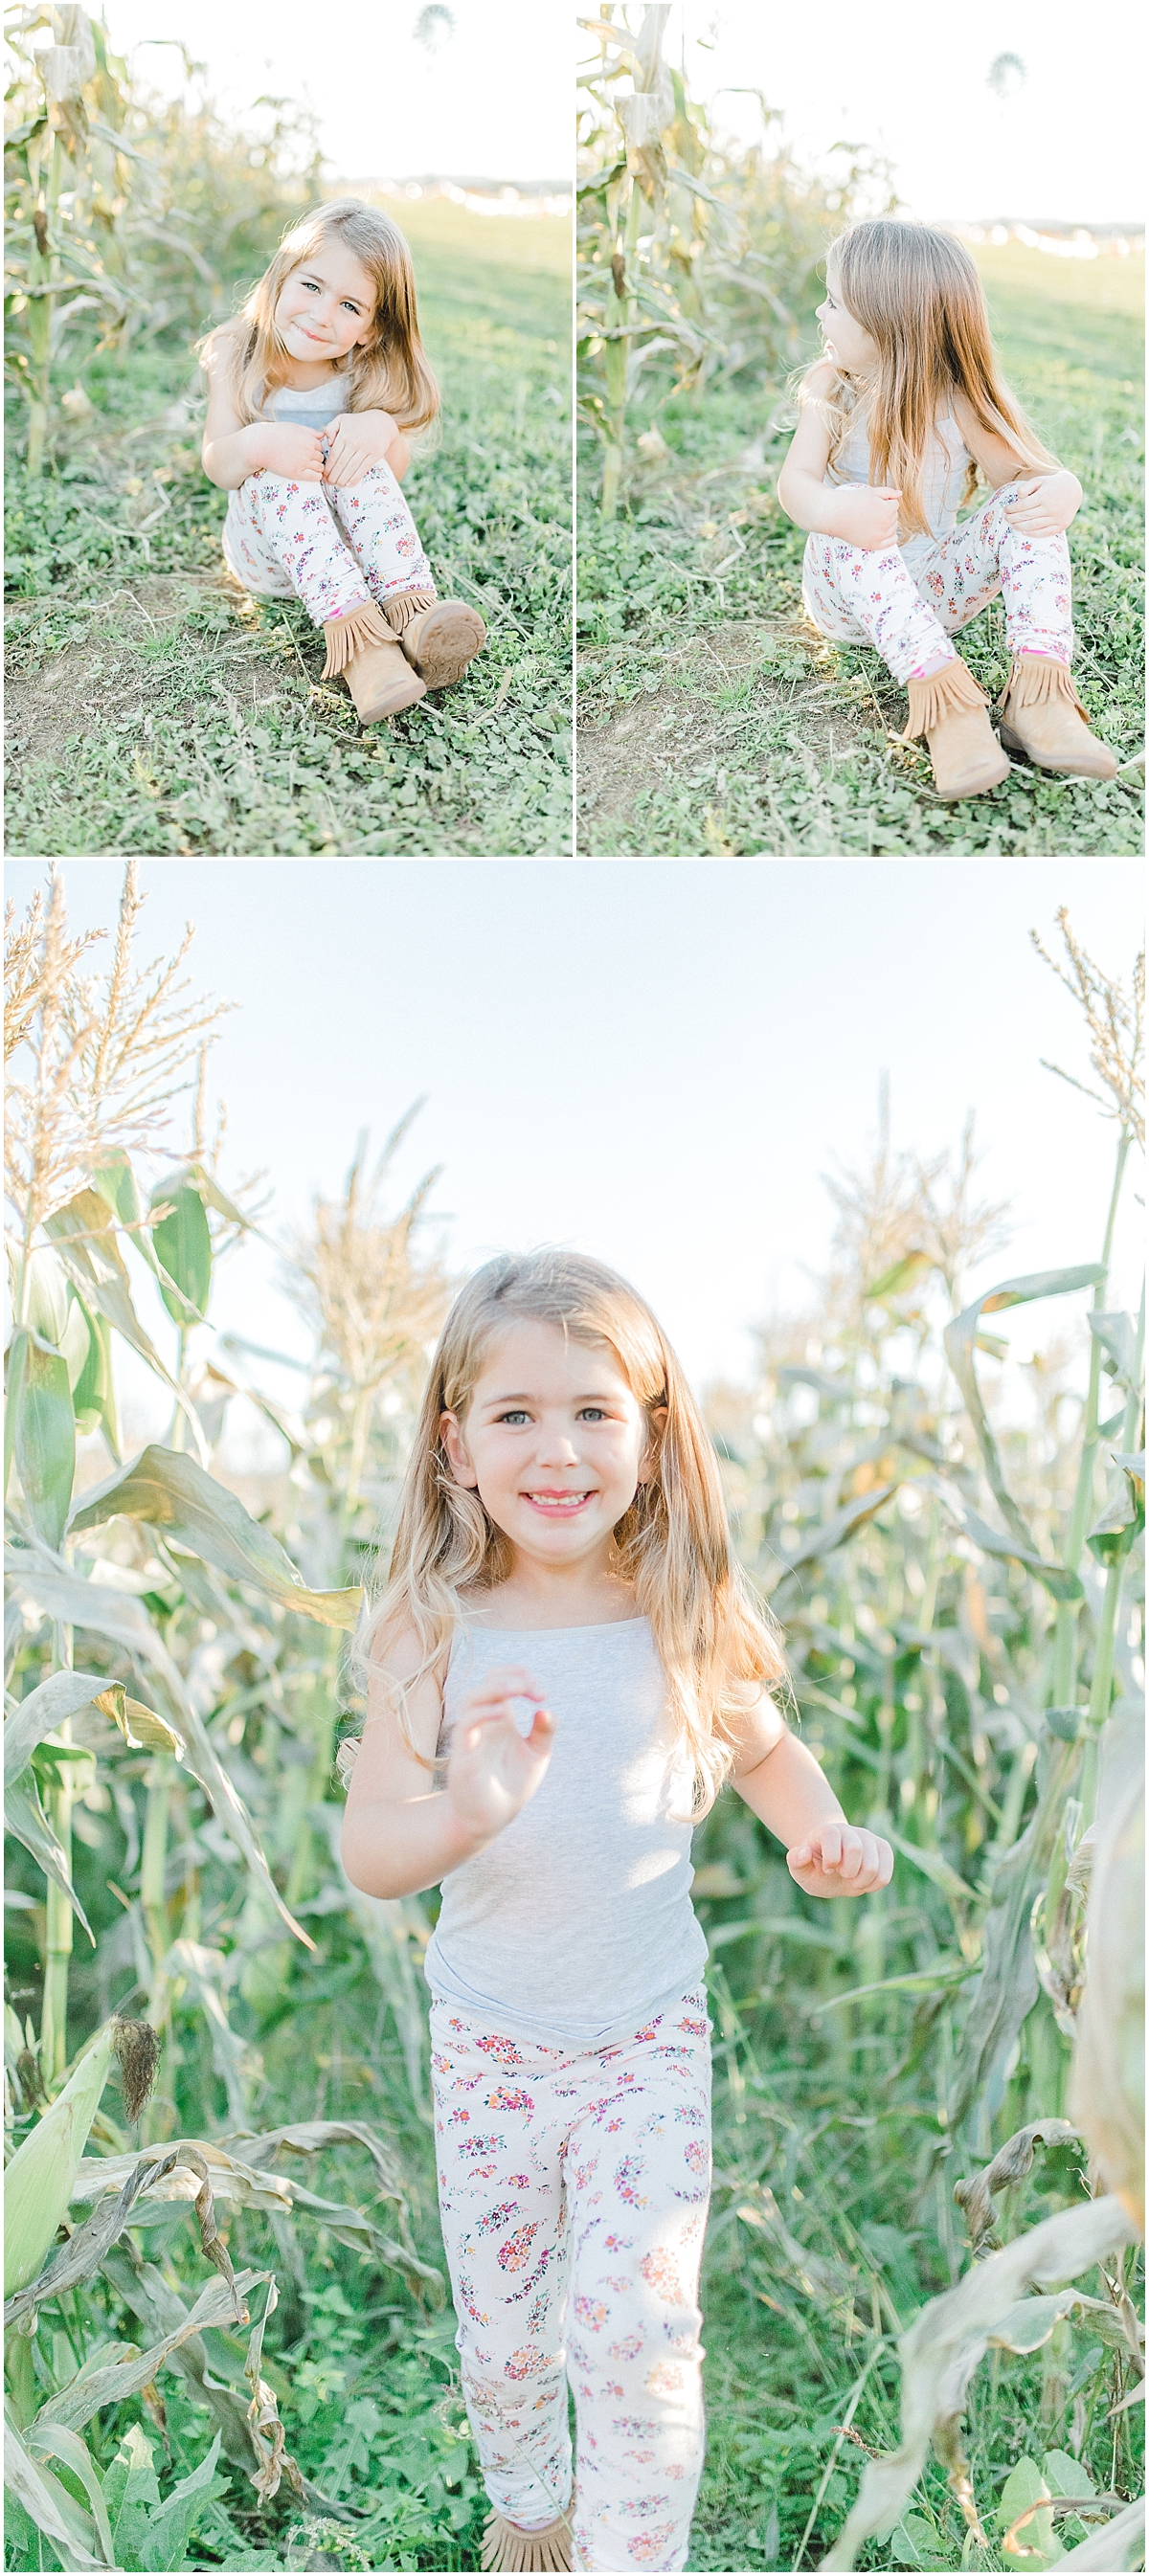 Pumpkin Patch Photo Shoot With Toddler and Mommy | Emma Rose Company Seattle Portland Light and Airy Wedding Photographer | Kindred Presets | Film_0010.jpg